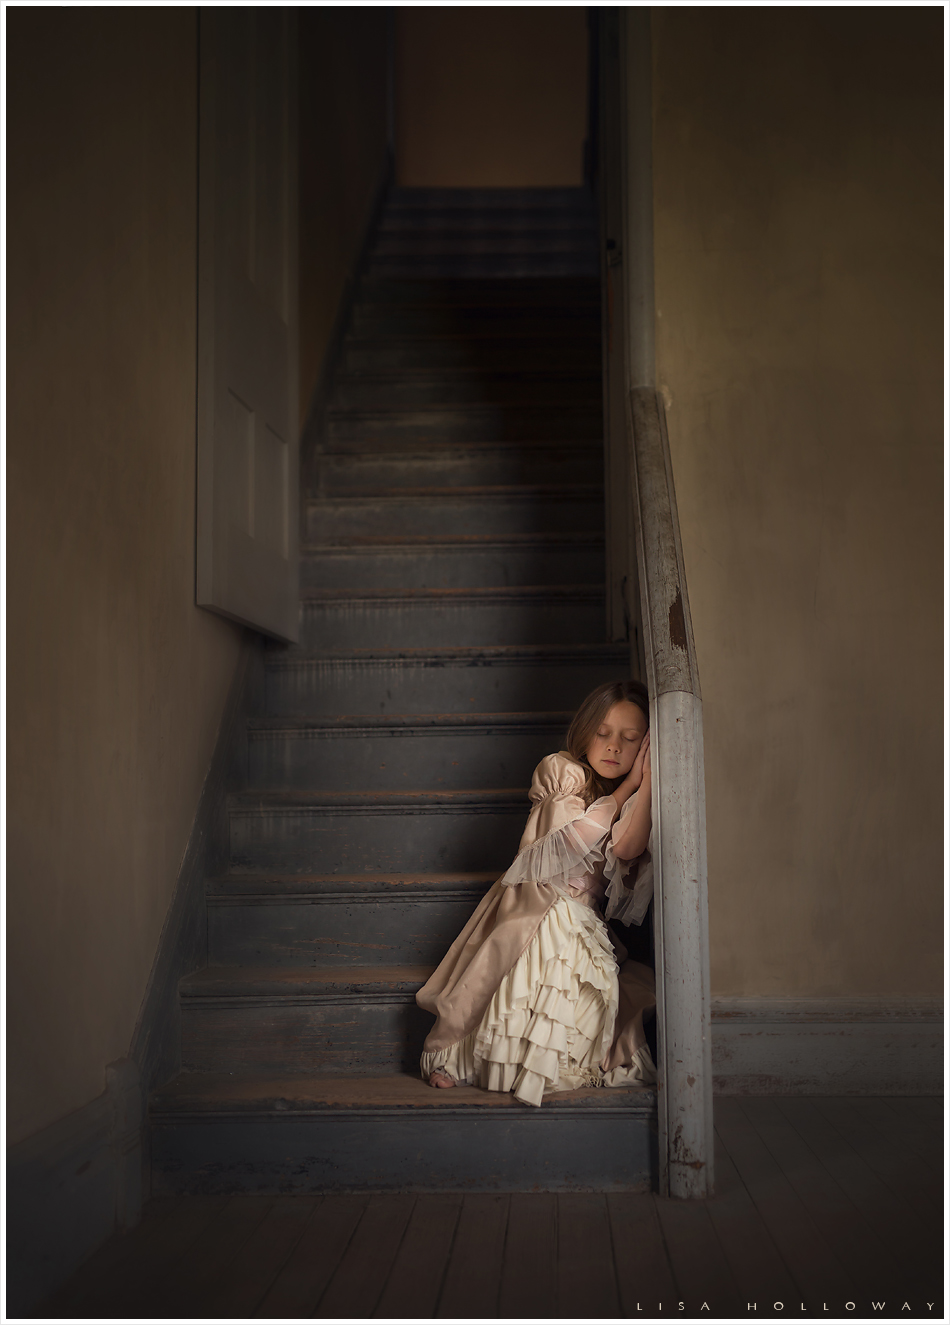 Little girl dressed in period clothing poses for a haunting portrait in the Montana ghost town, Bannack. LJHolloway Photography is a Las Vegas Child Photographer.